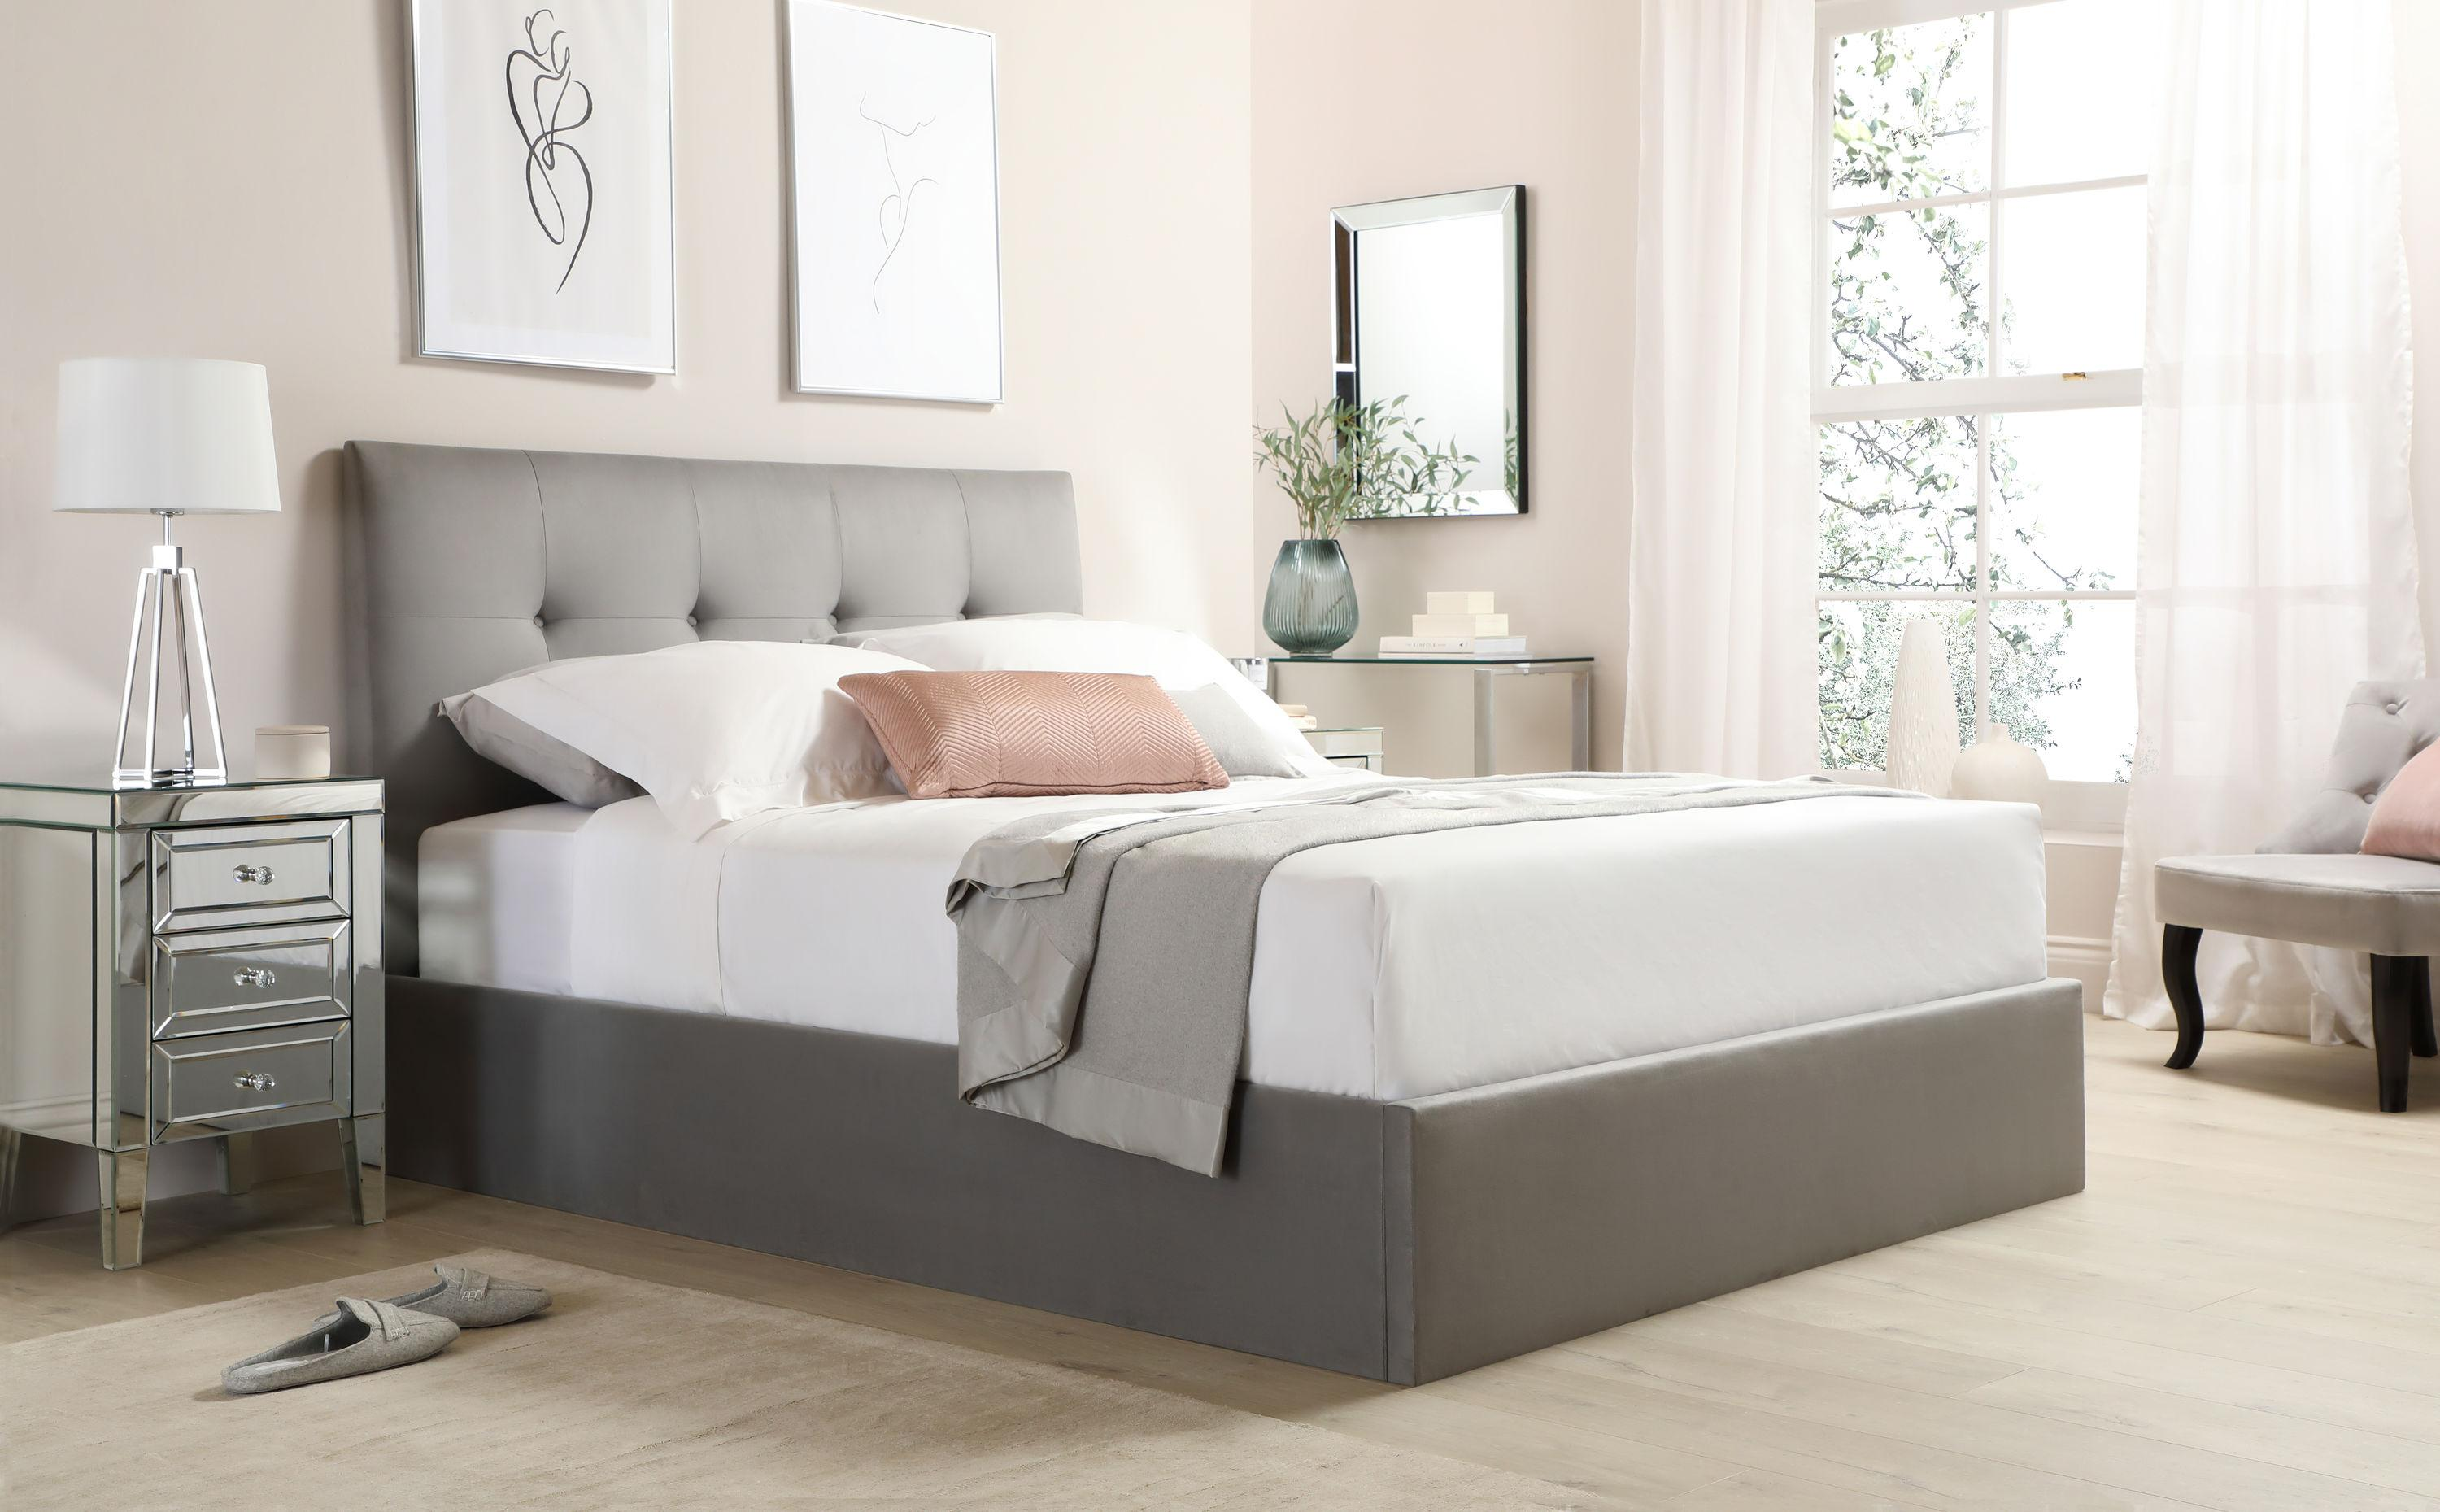 Grey velvet ottoman bed and mirrored bedside drawers in a modern and airy bedroom